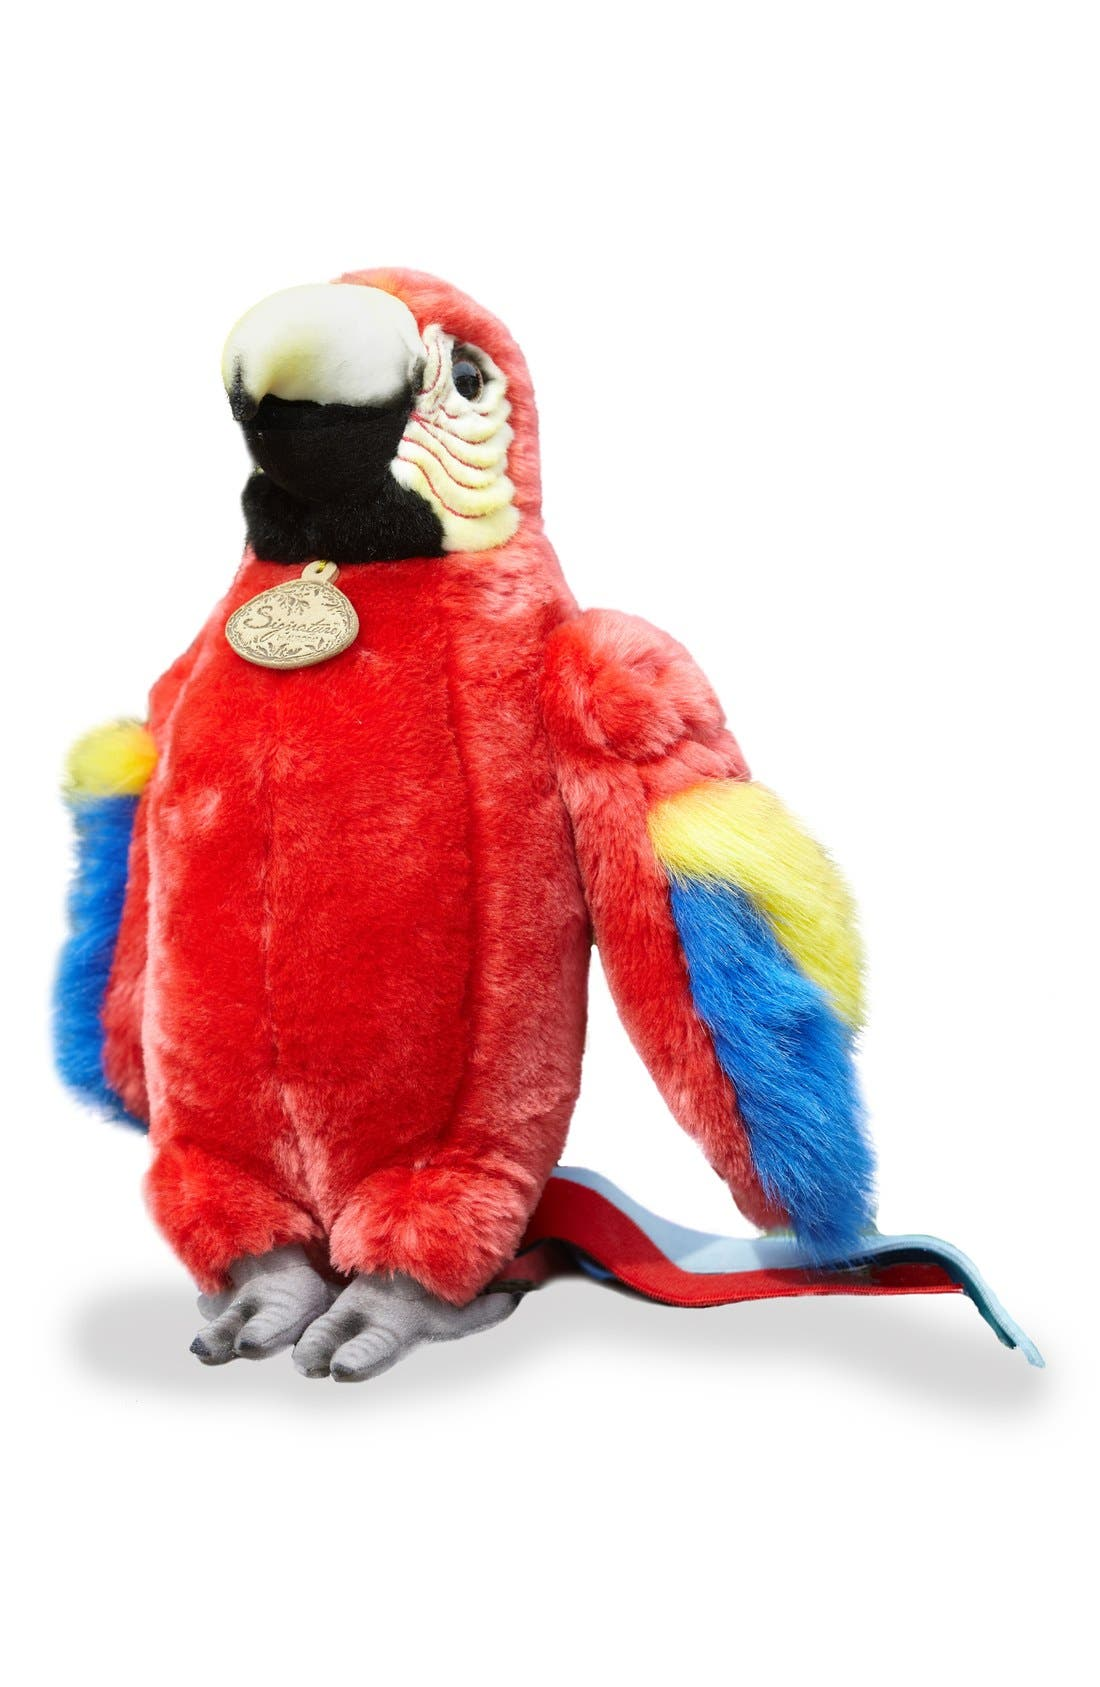 'Scarlet Macaw' Stuffed Animal,                         Main,                         color, Red